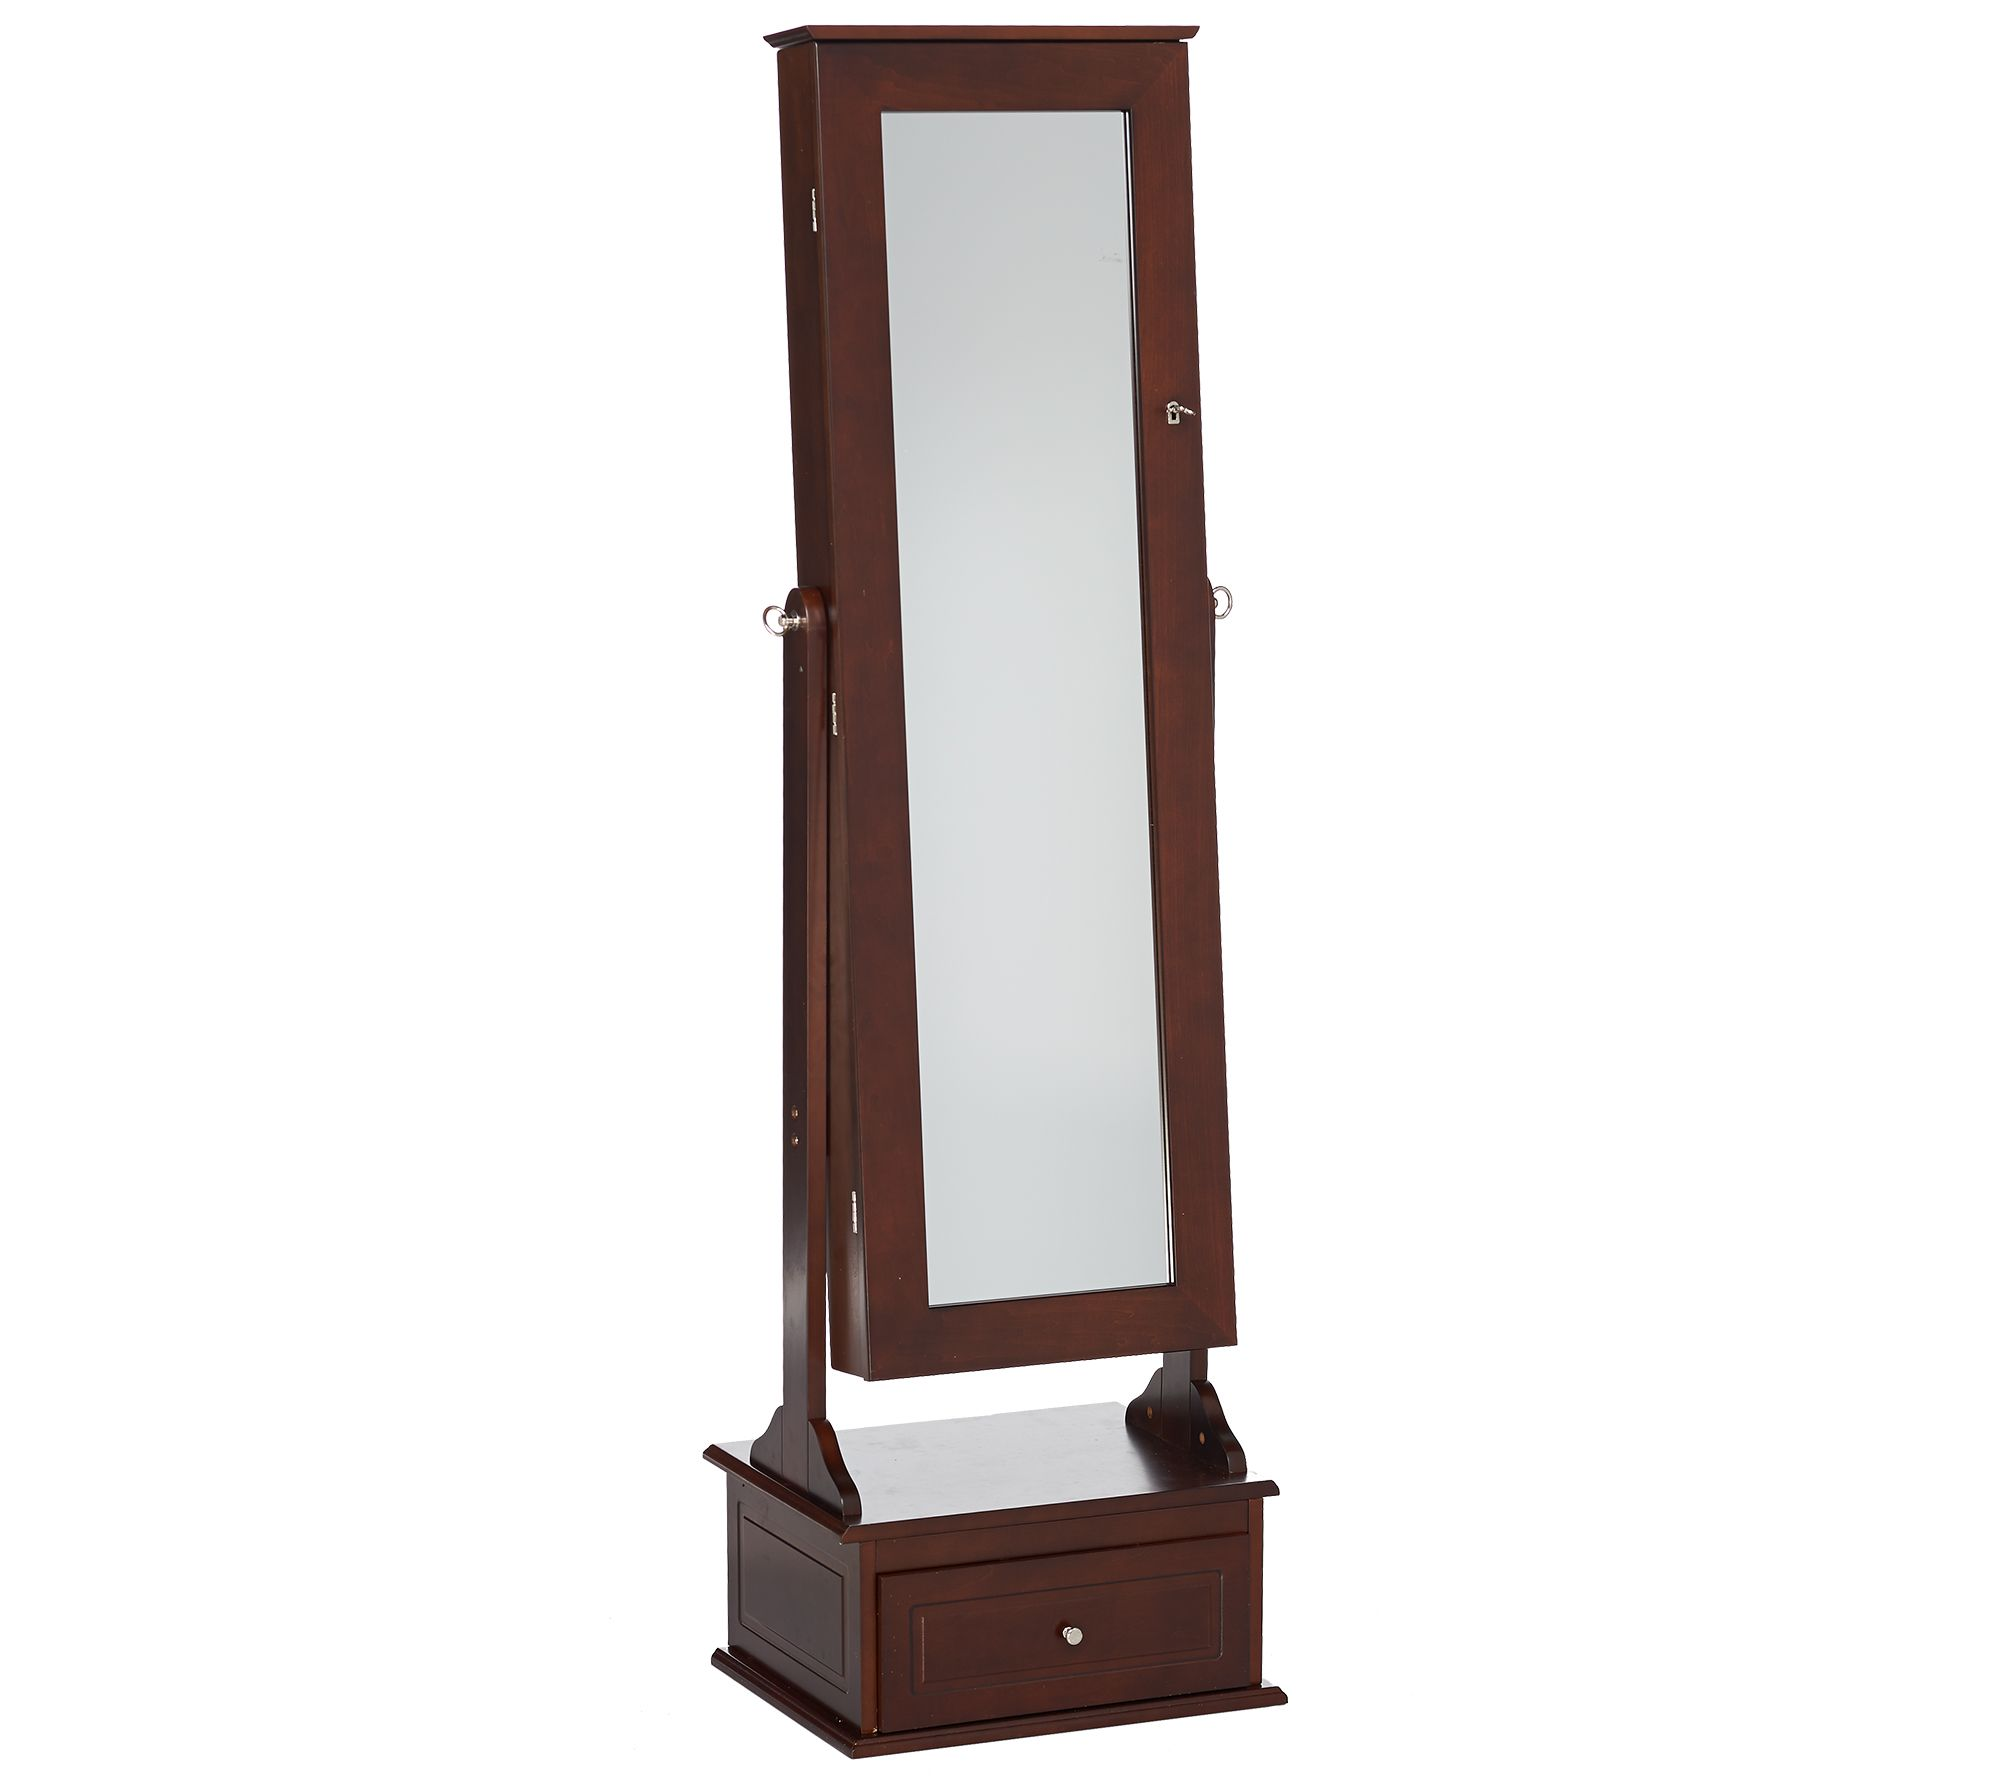 Safekeeper Jewelry Cabinet with Drawer by Lori Greiner Page 1